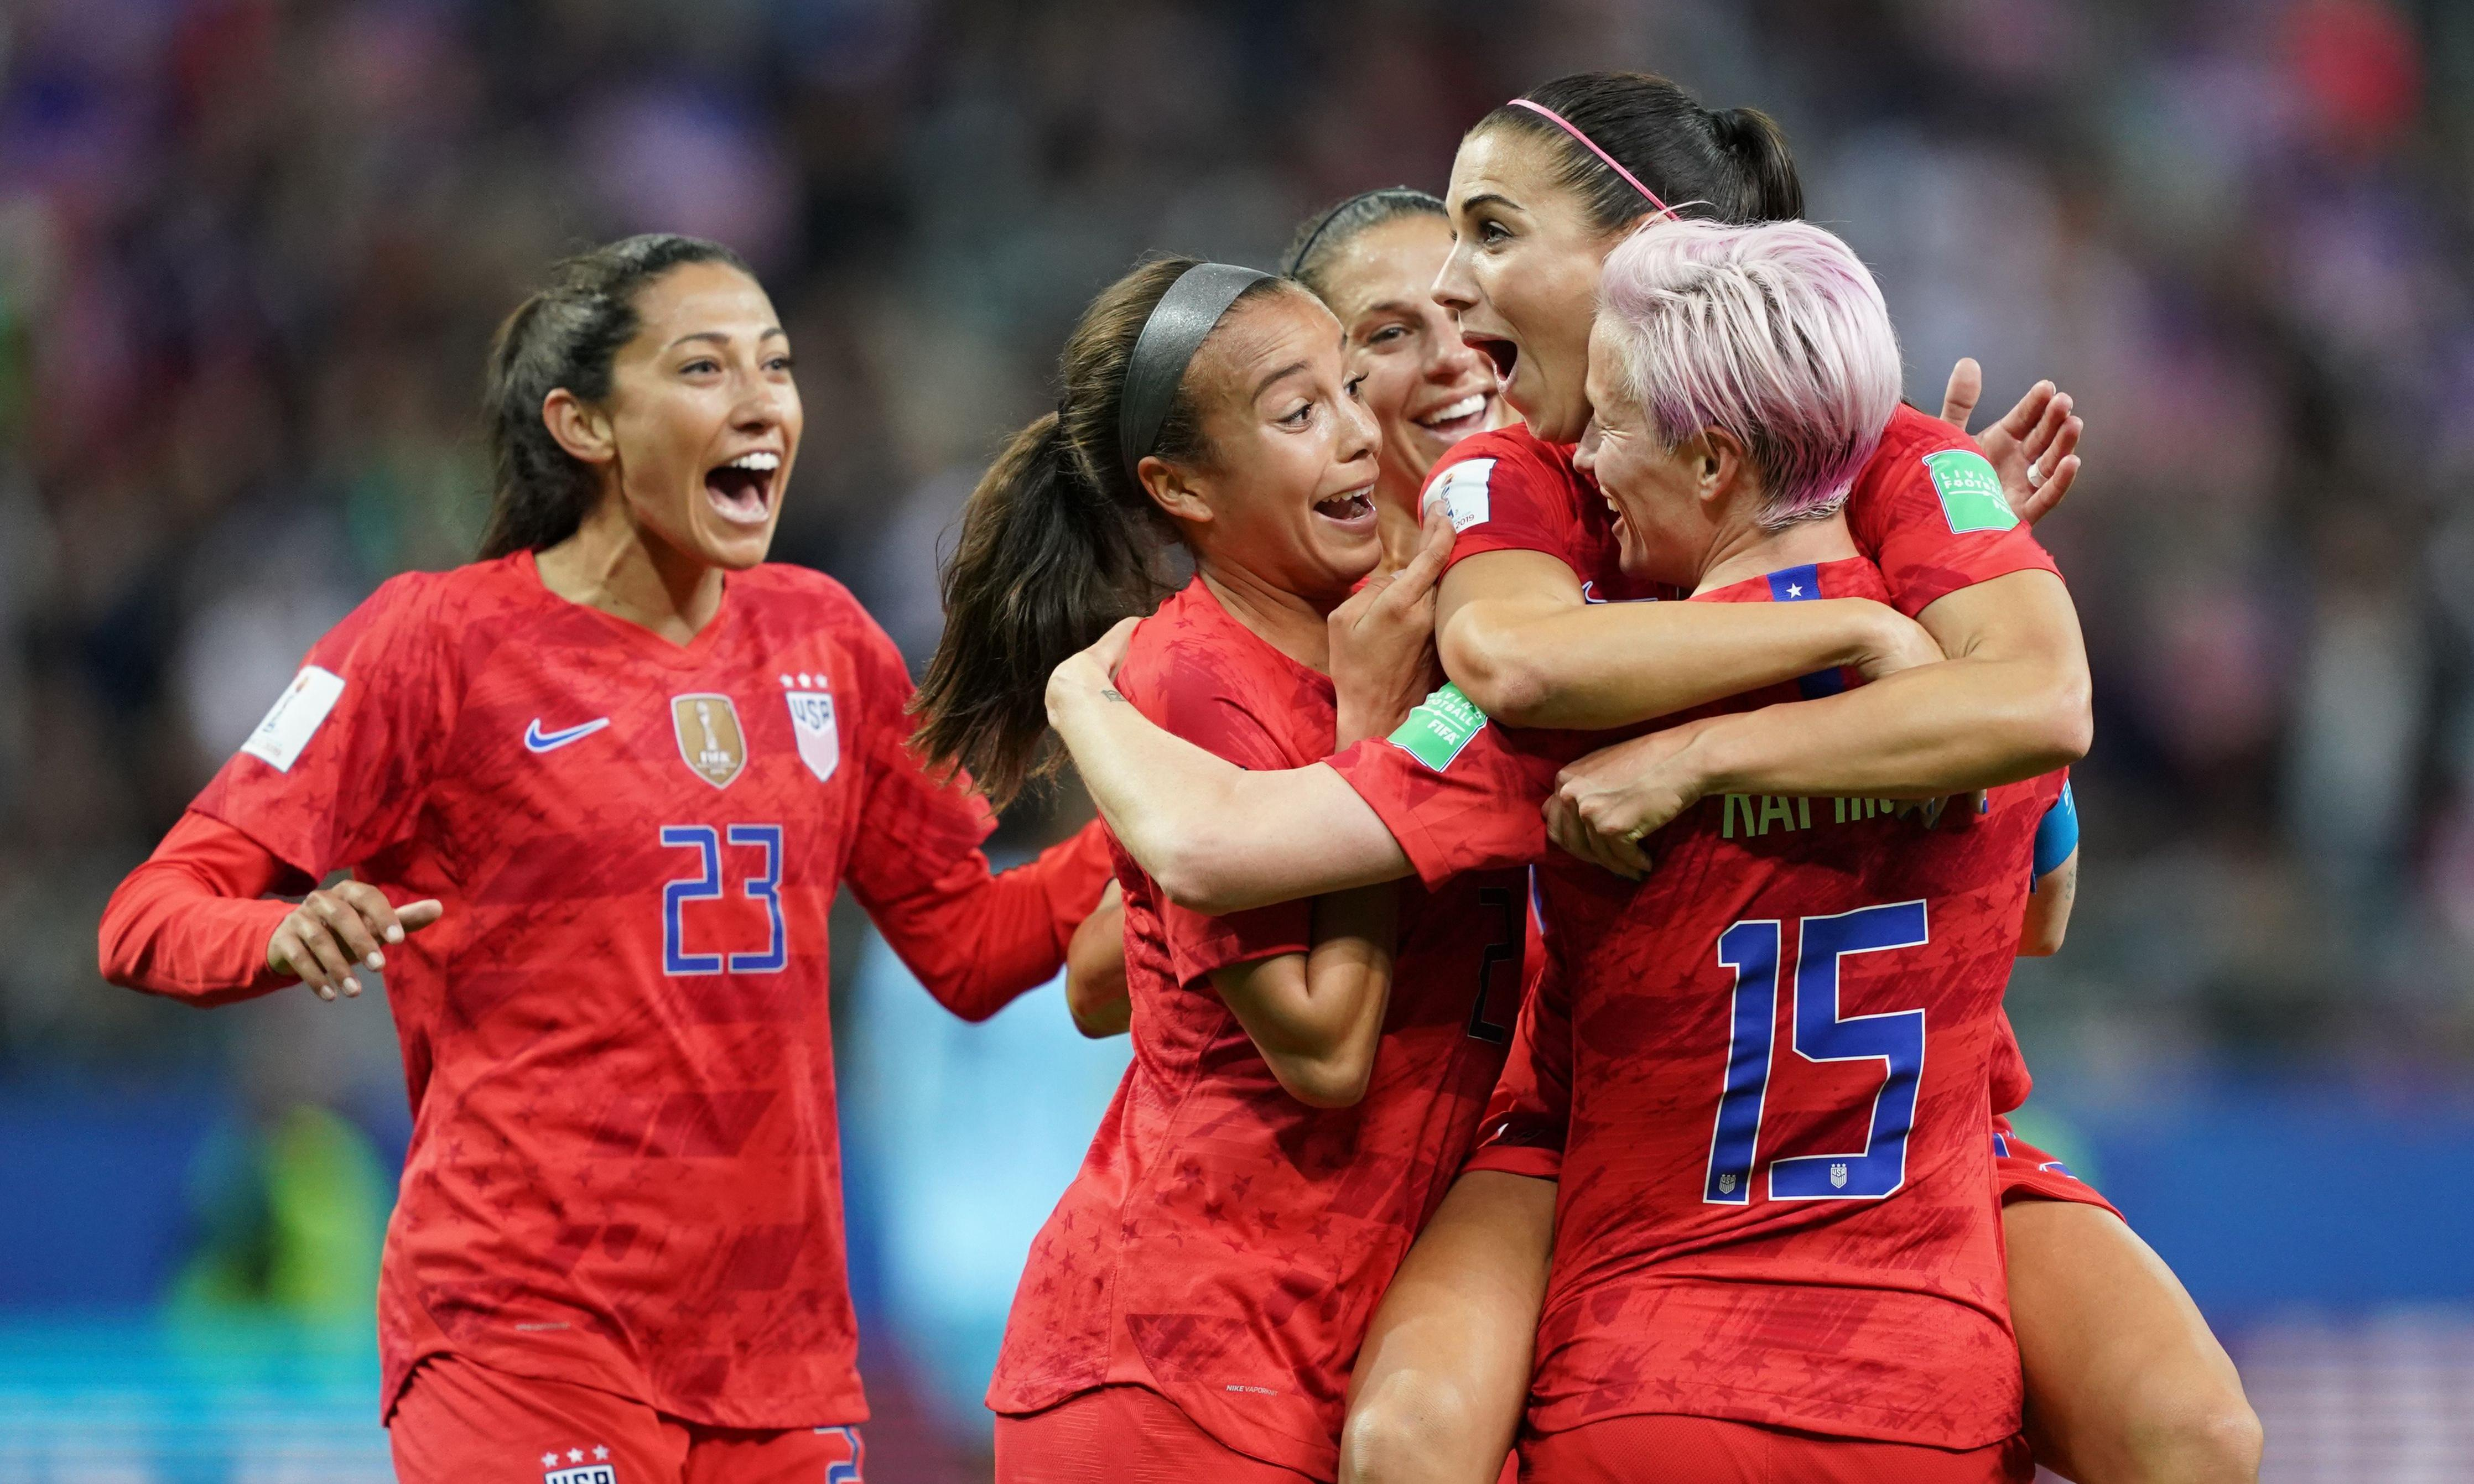 Women can never win – even when they win 13-0